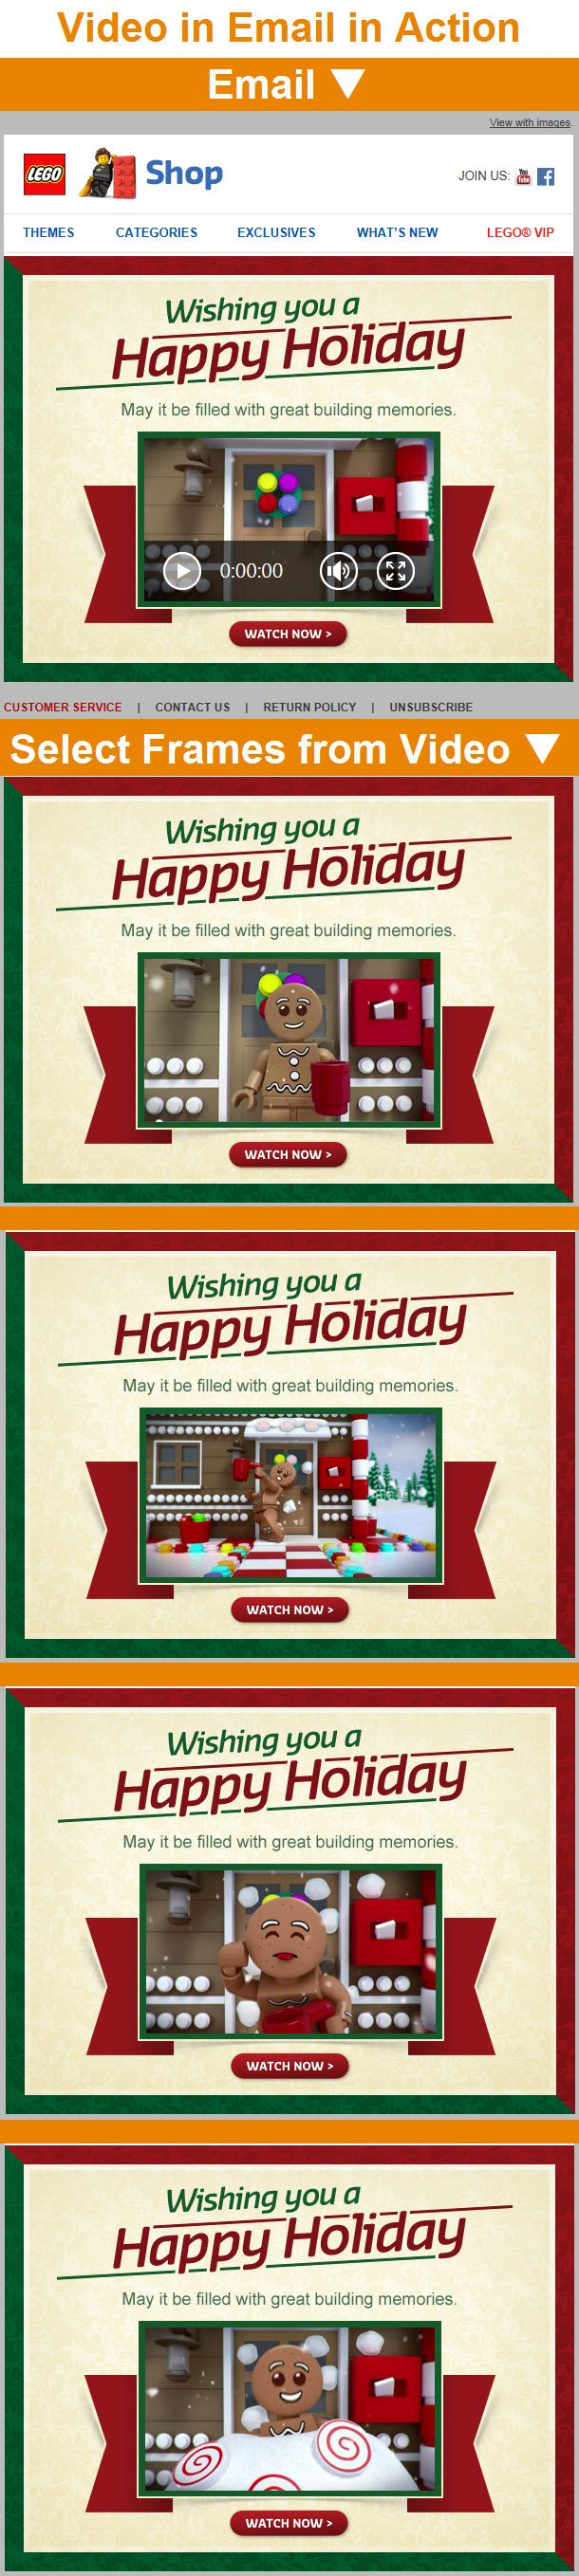 "Lego Shop >> sent 12/25/14 >> Happy Holidays from the Official LEGO® Shop! >> Lego delivers a special season's greeting experience with this 15-second video that's playable within many email clients. The video, which is powered by LiveClicker, is about a snowball-dodging gingerbread man and likely saw strong engagement, especially in the wake of highly successful ""The Lego Movie."" —Chad White, Lead Research Analyst, Salesforce Marketing Cloud"